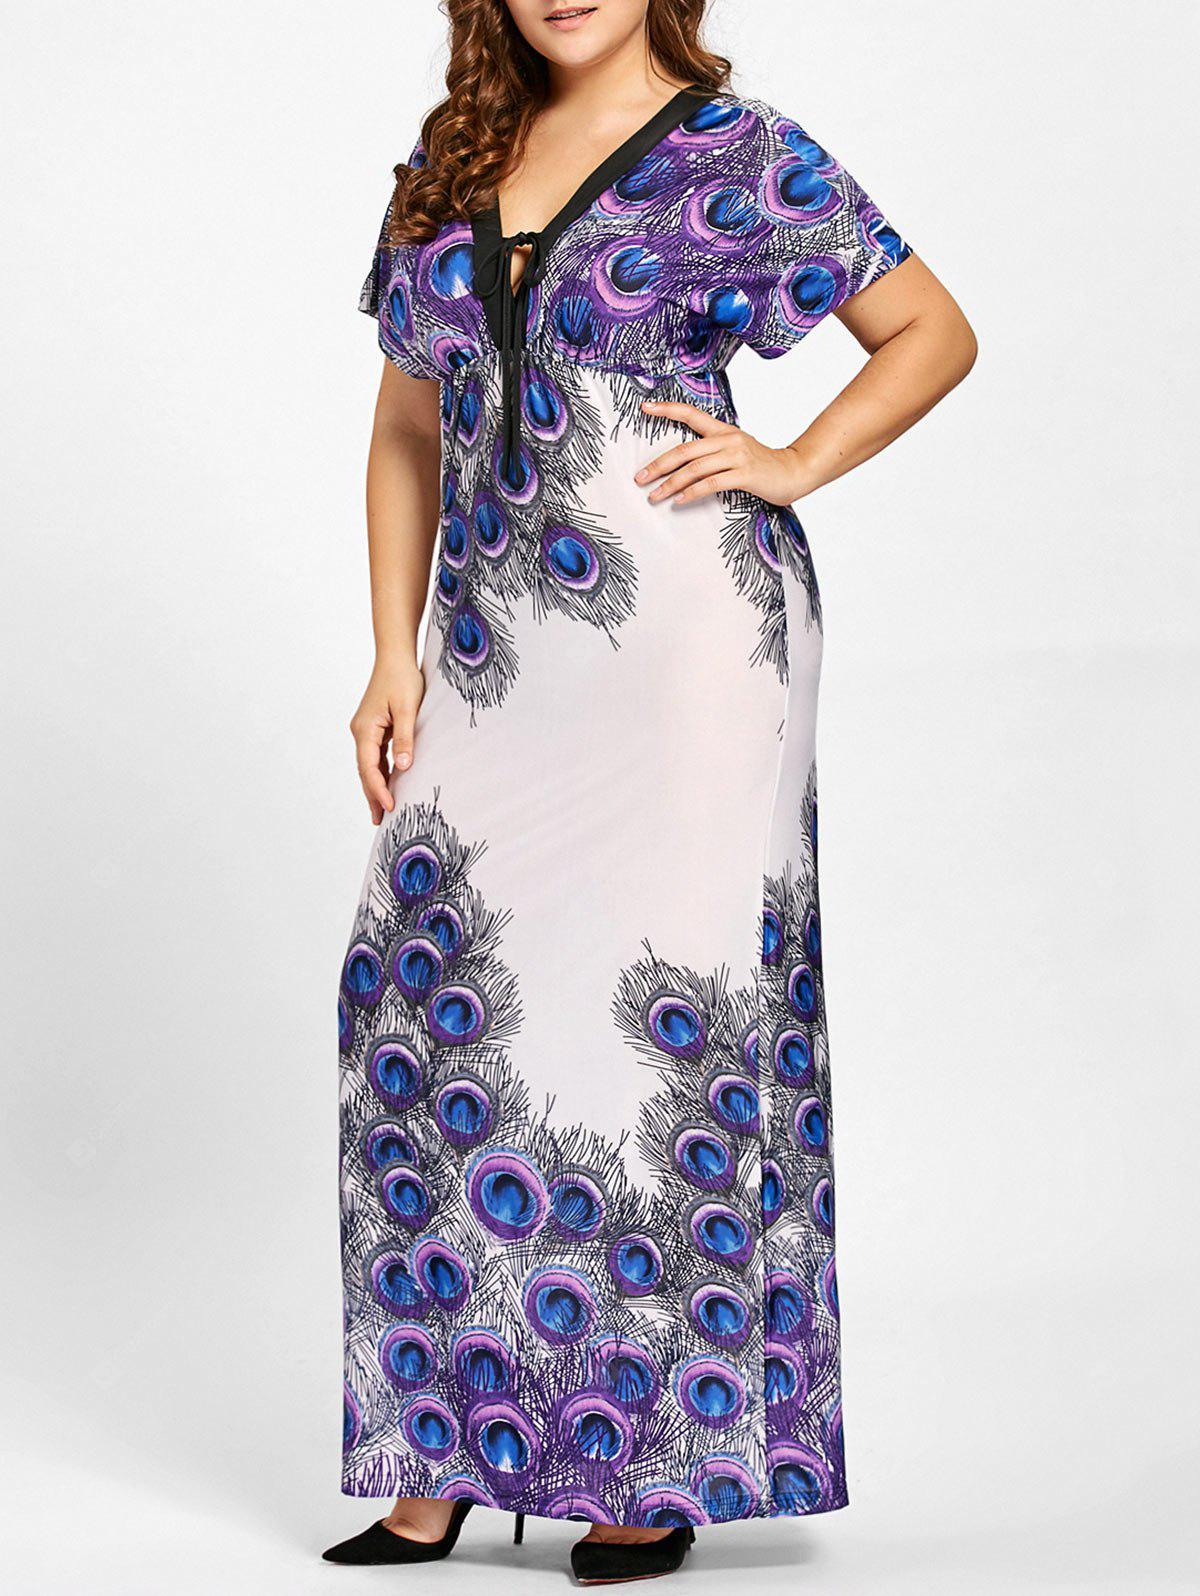 PURPLE 7XL Plus Size Peacock Feather Print Empire Waist Dress